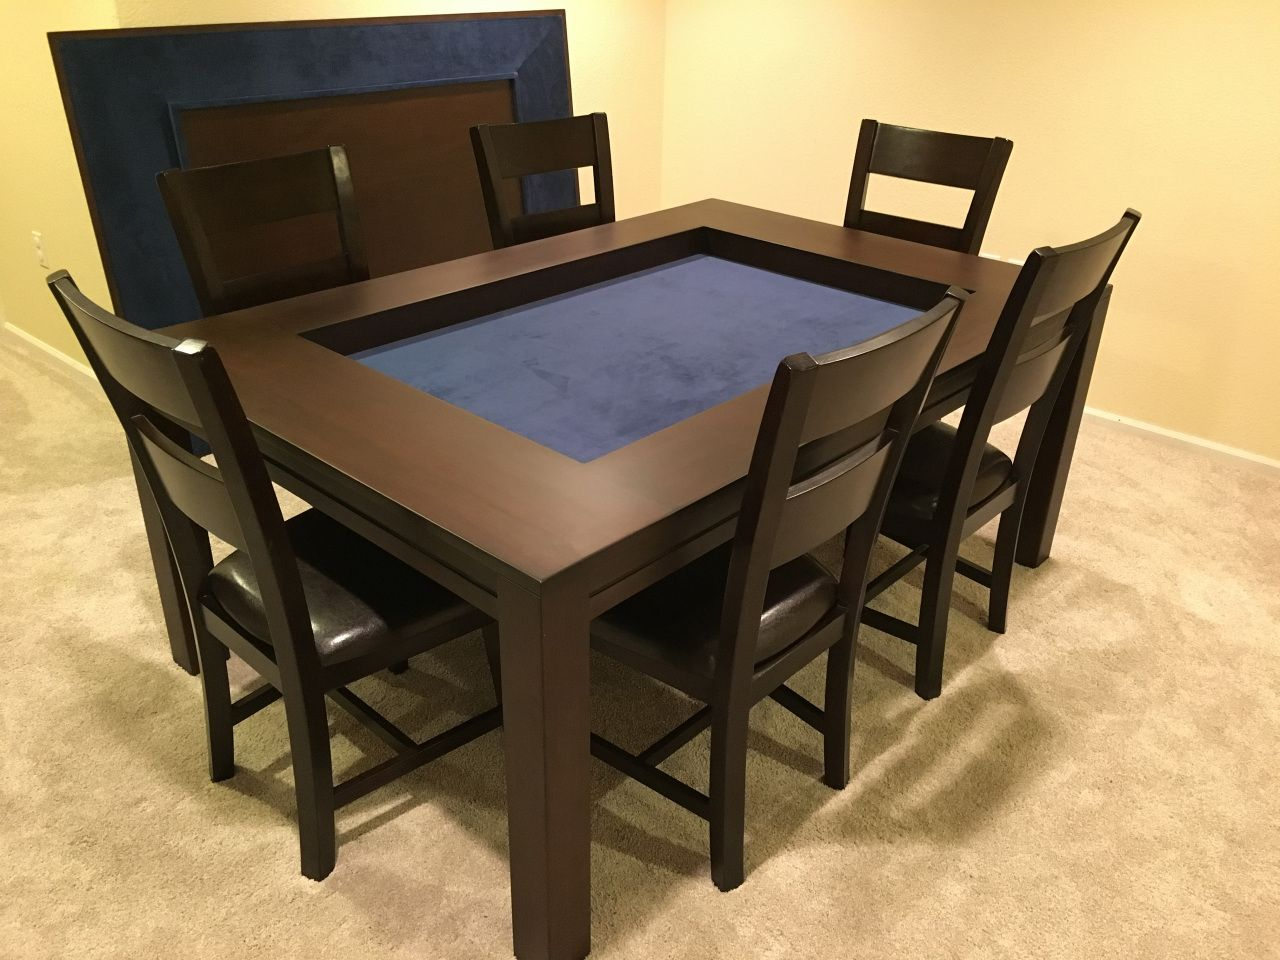 Dining Room Game Table Best Home Interior - Board game dining room table